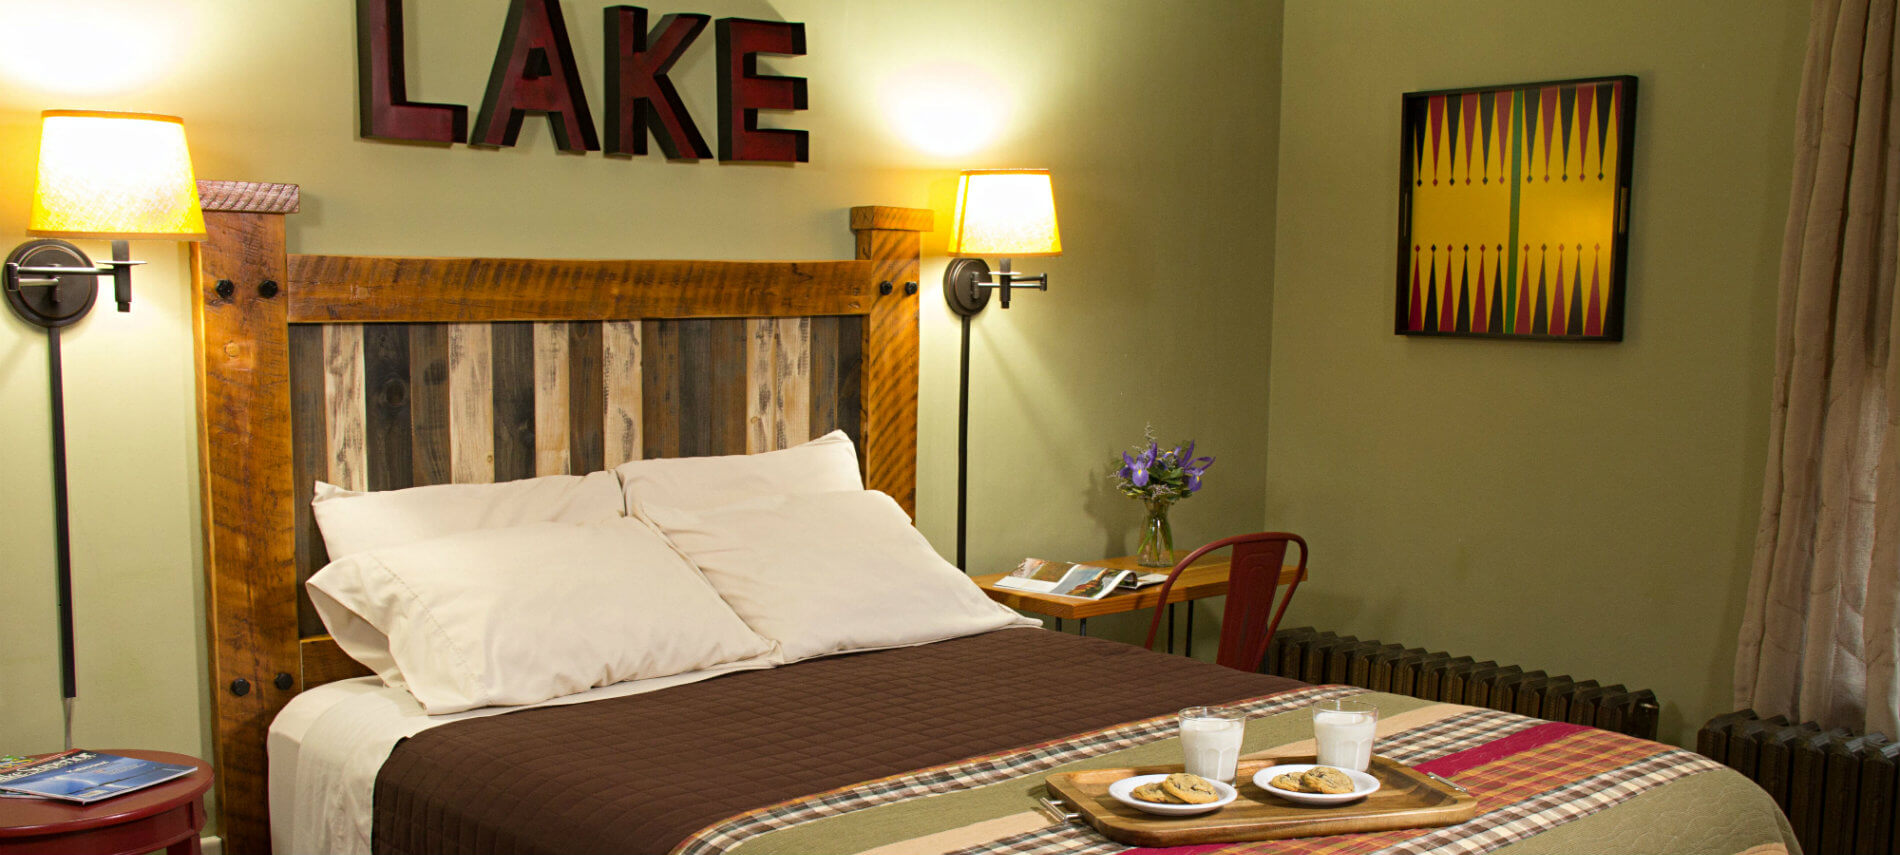 Light green guest room, bed with wood headboard and tray of cookies and milk, nightstands and reading lights